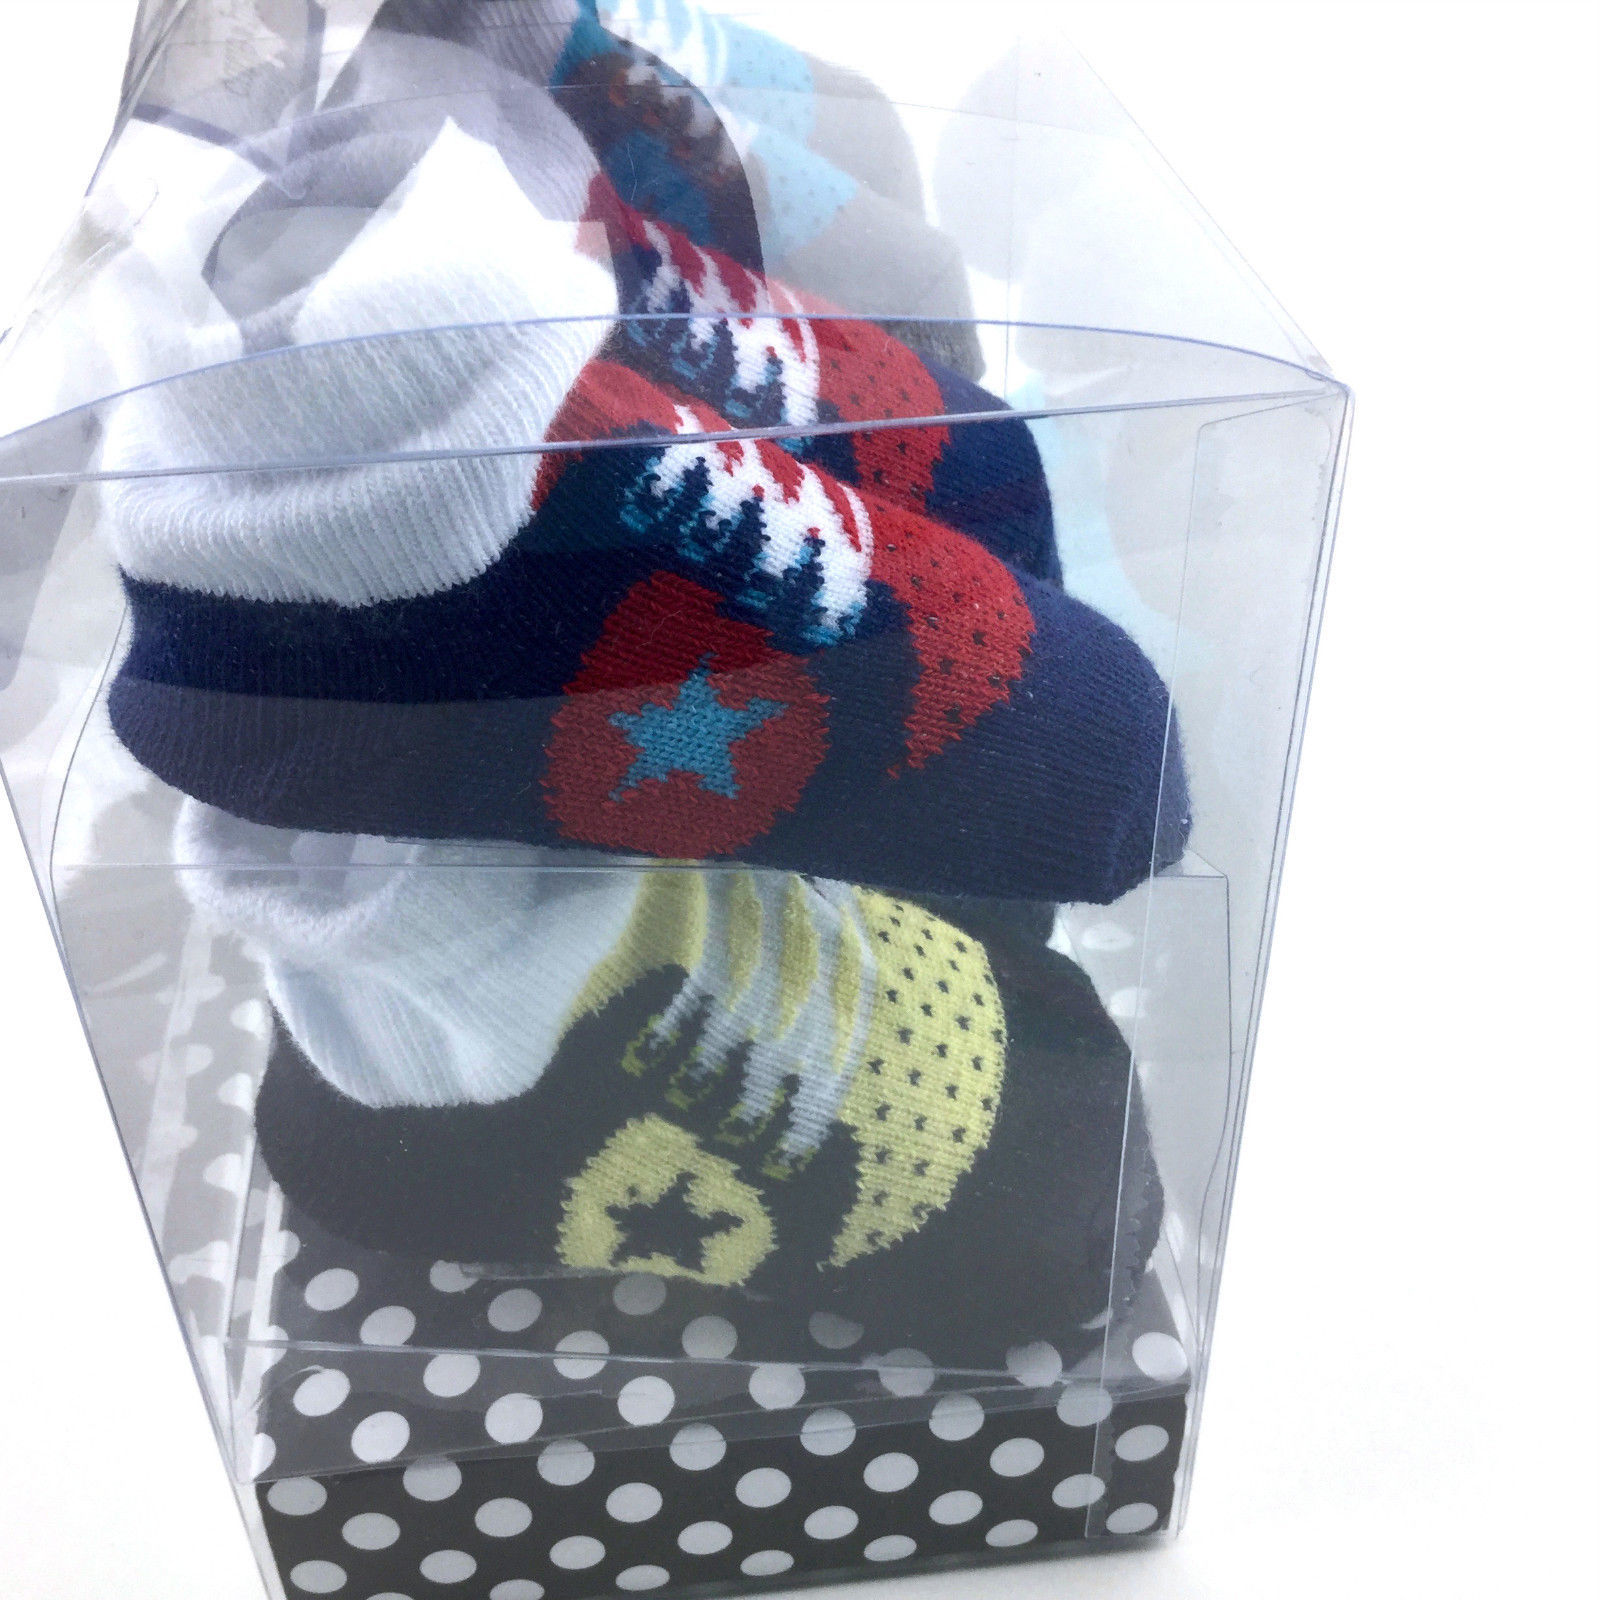 Baby Newborn Crib Shoes Booties Socks Size 0 12 Months 4 Pairs By Cutie Pie